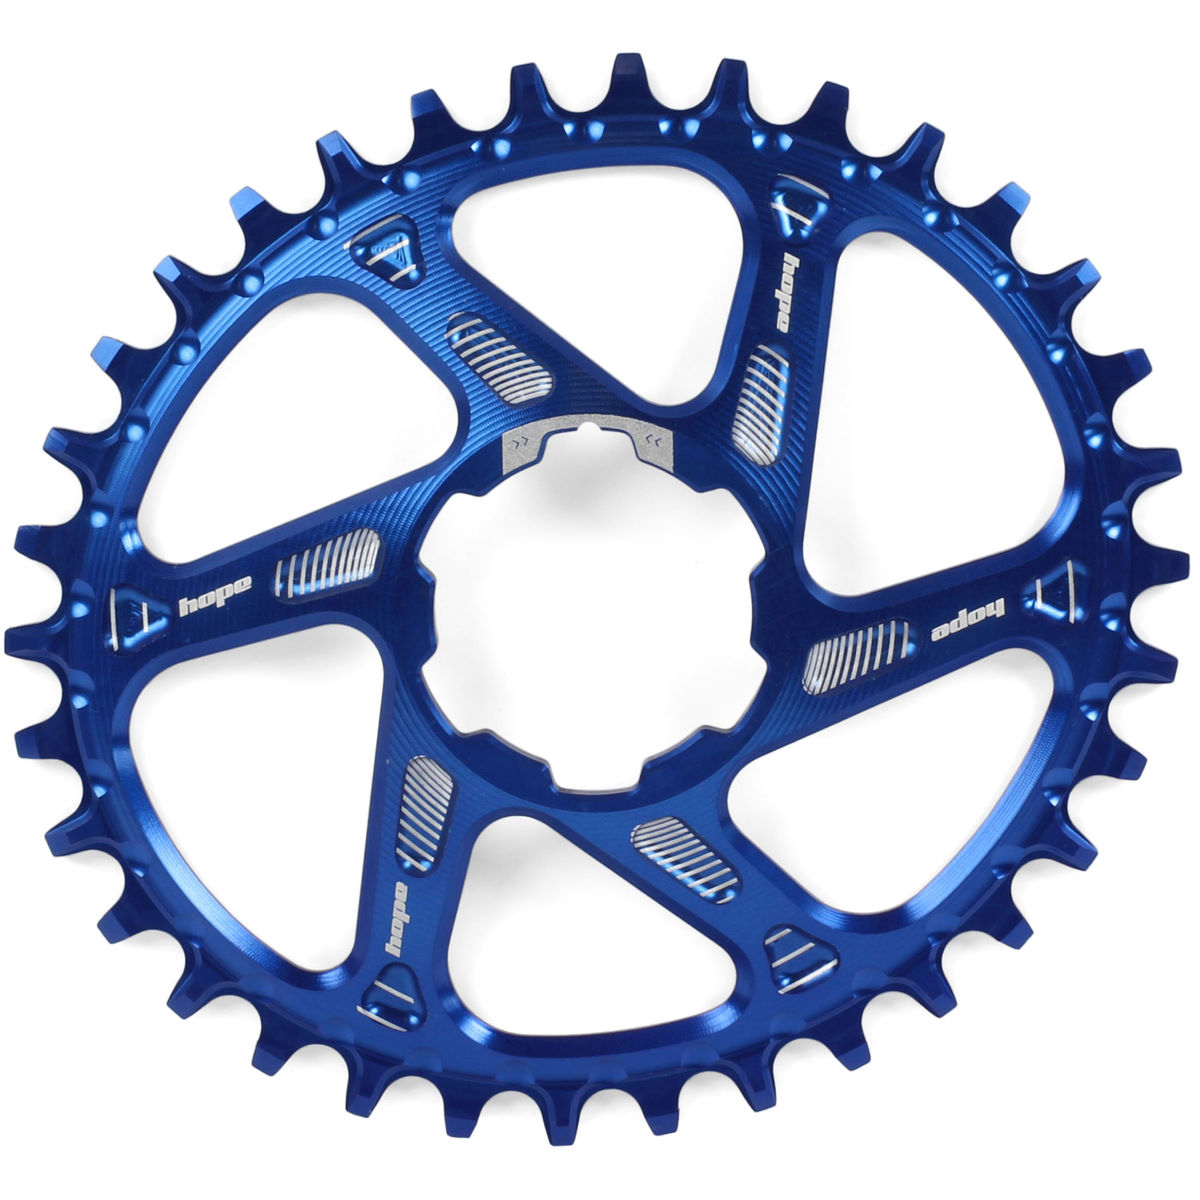 Hope Hope Oval Spiderless Boost Retainer Ring   Chain Rings